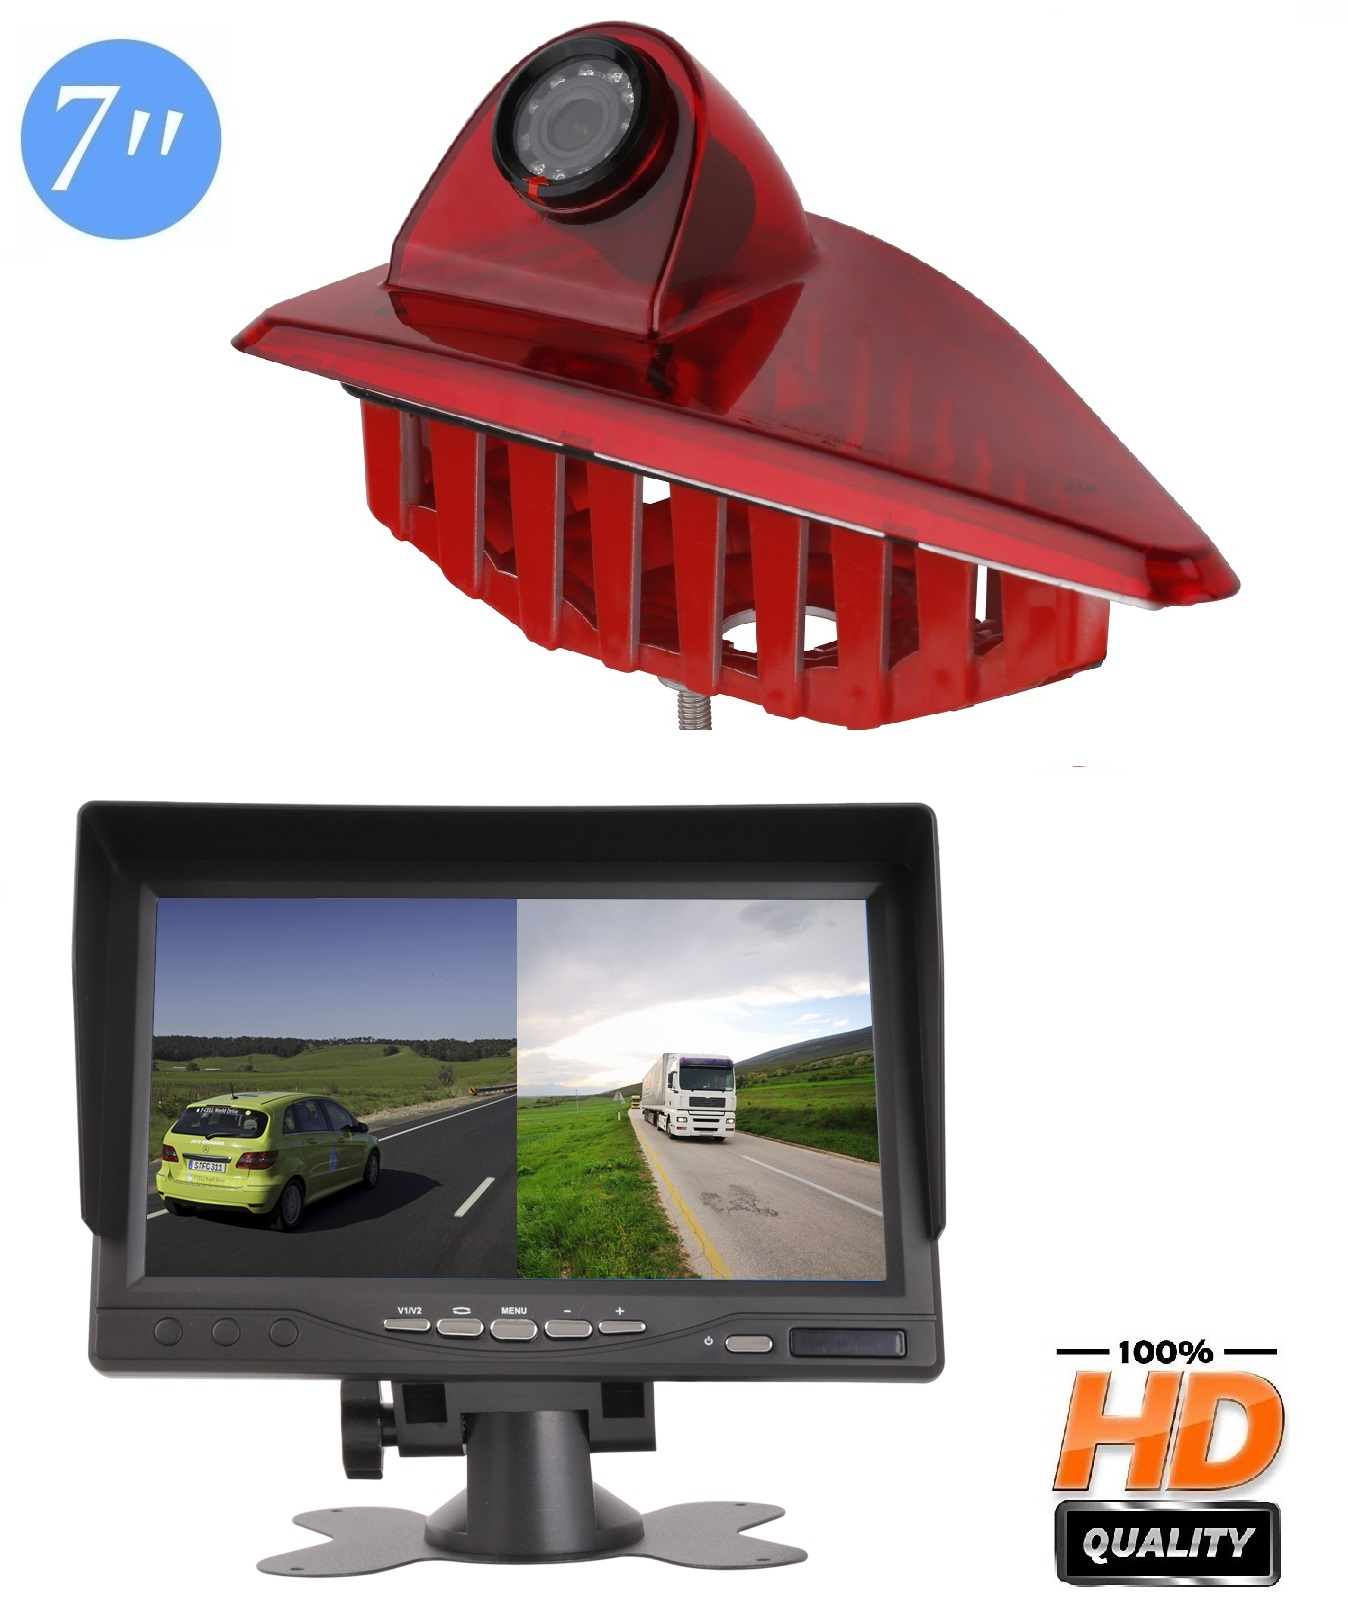 3RD Brake Light Rear View Backup Parking Reversing Camera With 7 Inch LCD Monitor Kits for Transporter OPEL Movano B Renault Master III 2010-2019 Nissan NV400